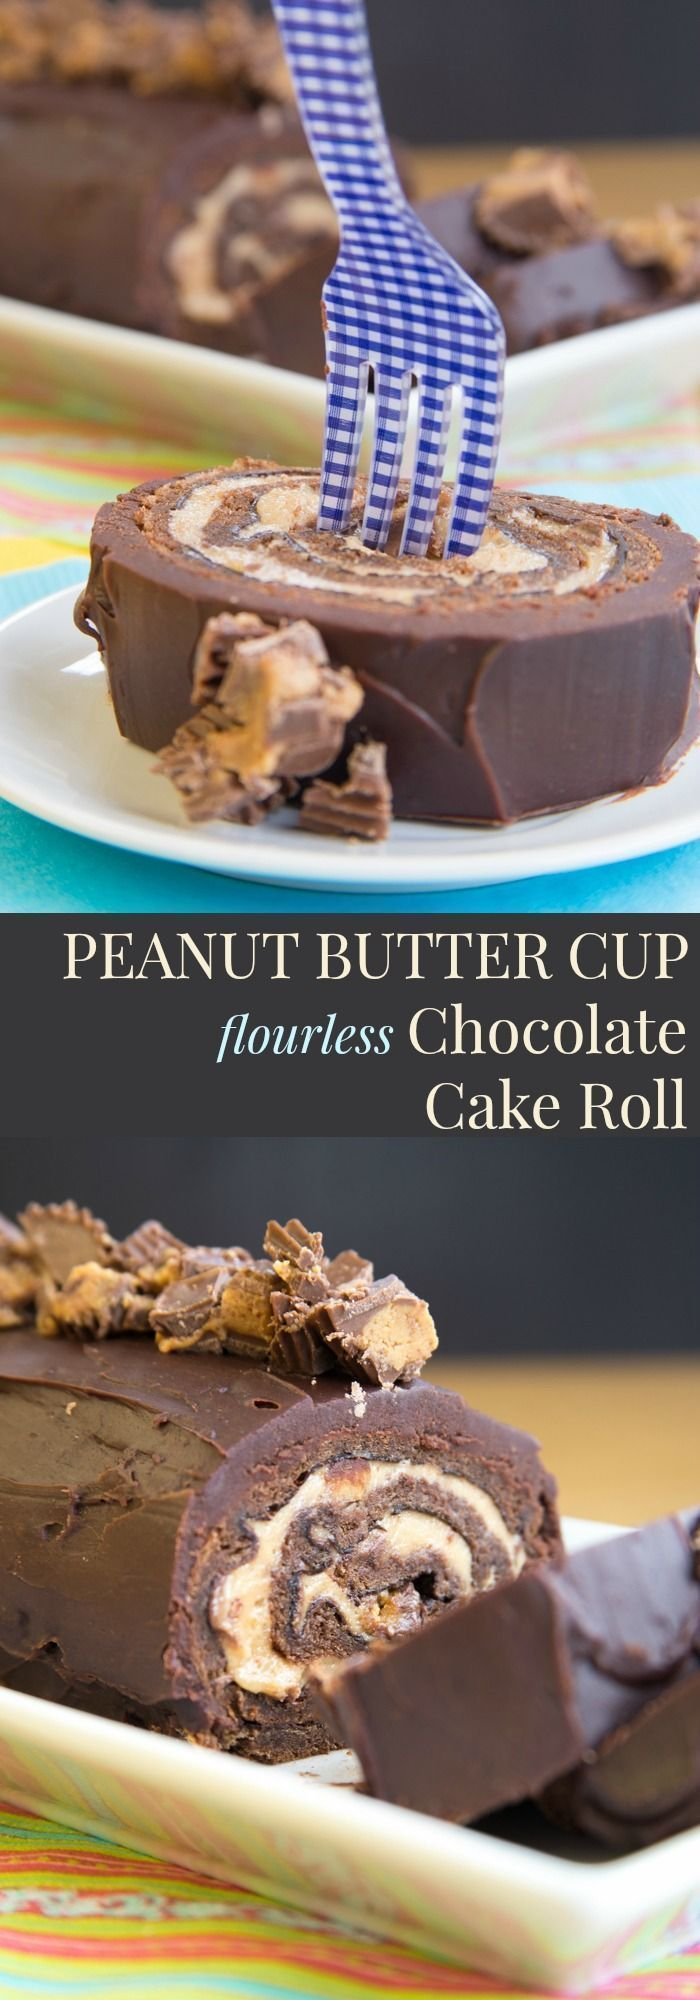 Peanut Butter Cup Flourless Chocolate Cake Roll ~ fill a tender sponge cake with peanut butter mousse studded with peanut butter cups and drench it in chocolate ganache for a decadent dessert recipe (gluten free too)! #dessertfoodrecipes